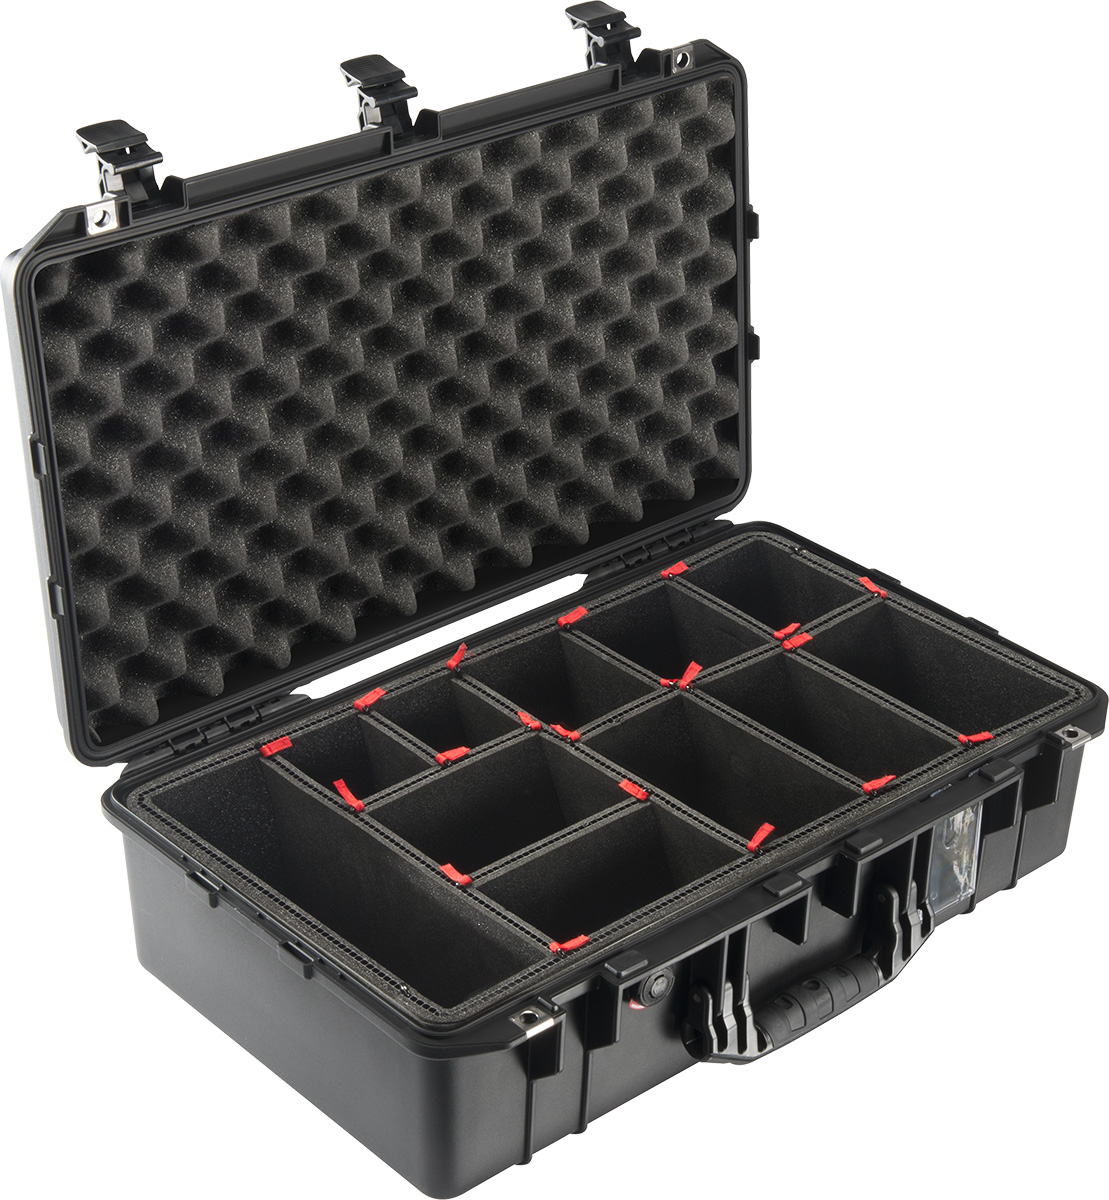 pelican air 1555 trekpak camera case waterproof cases